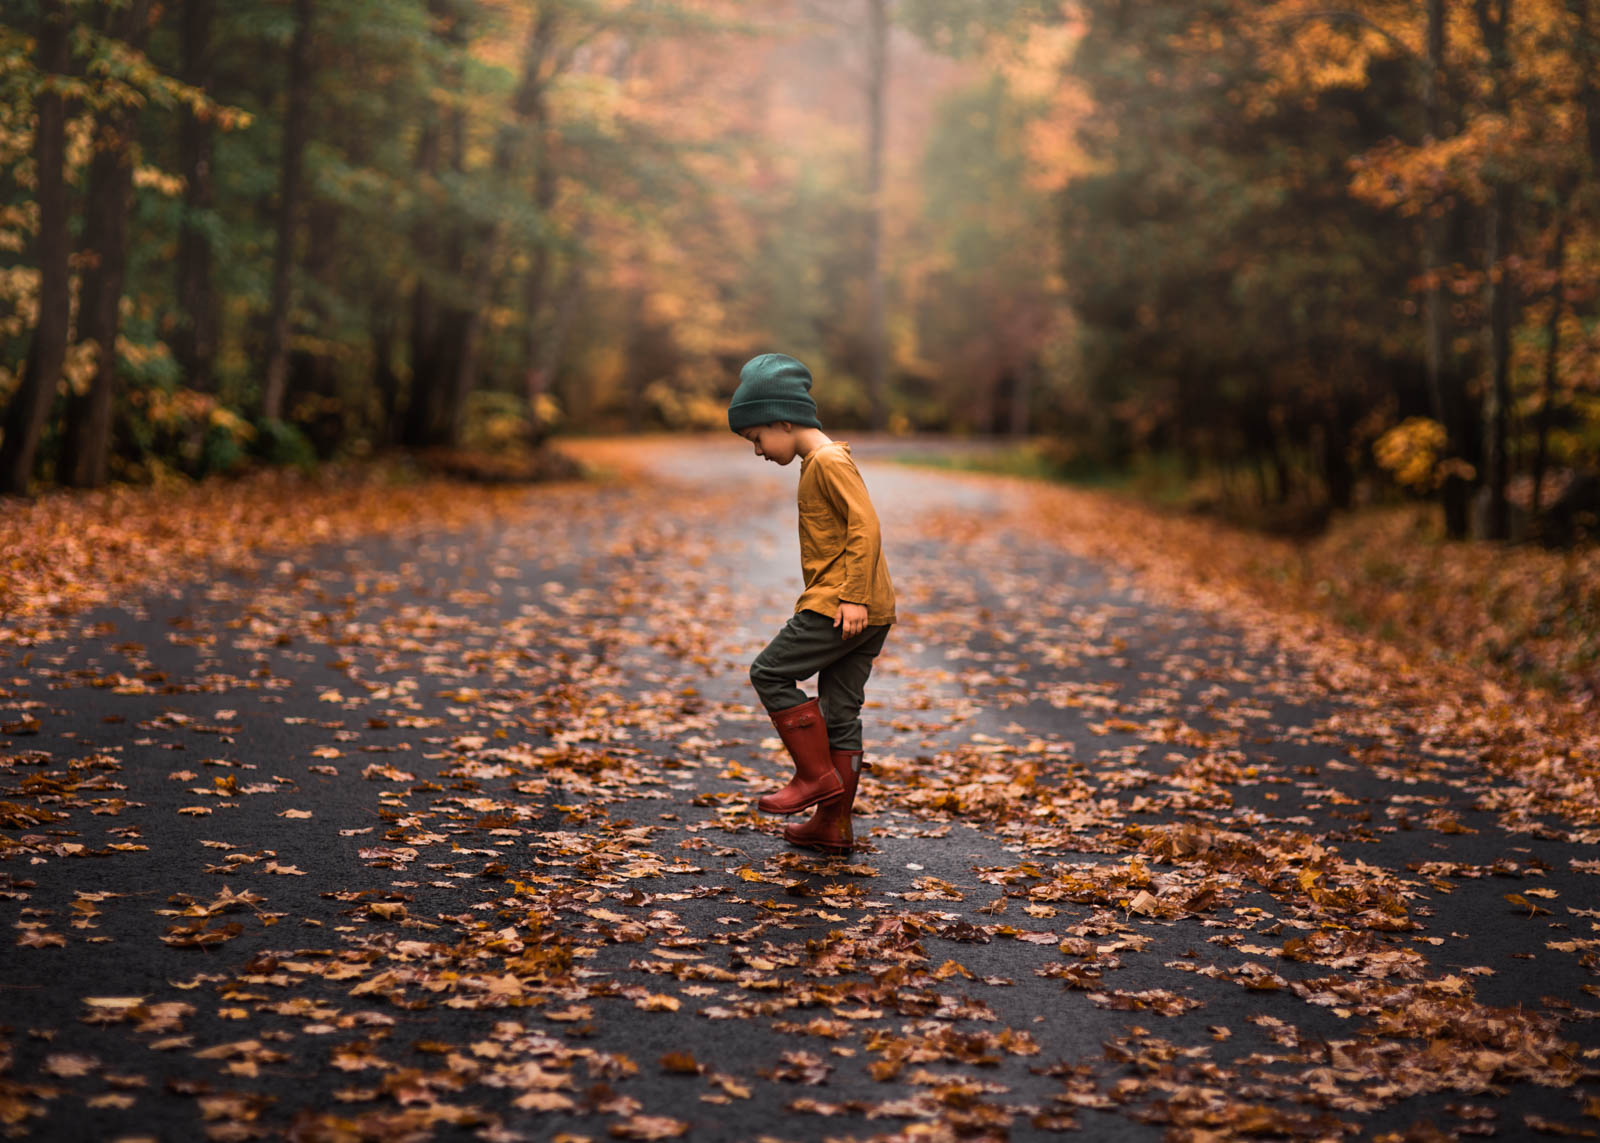 photographing fall color boy in boots and hat on trail with leaves on ground sarah gupta